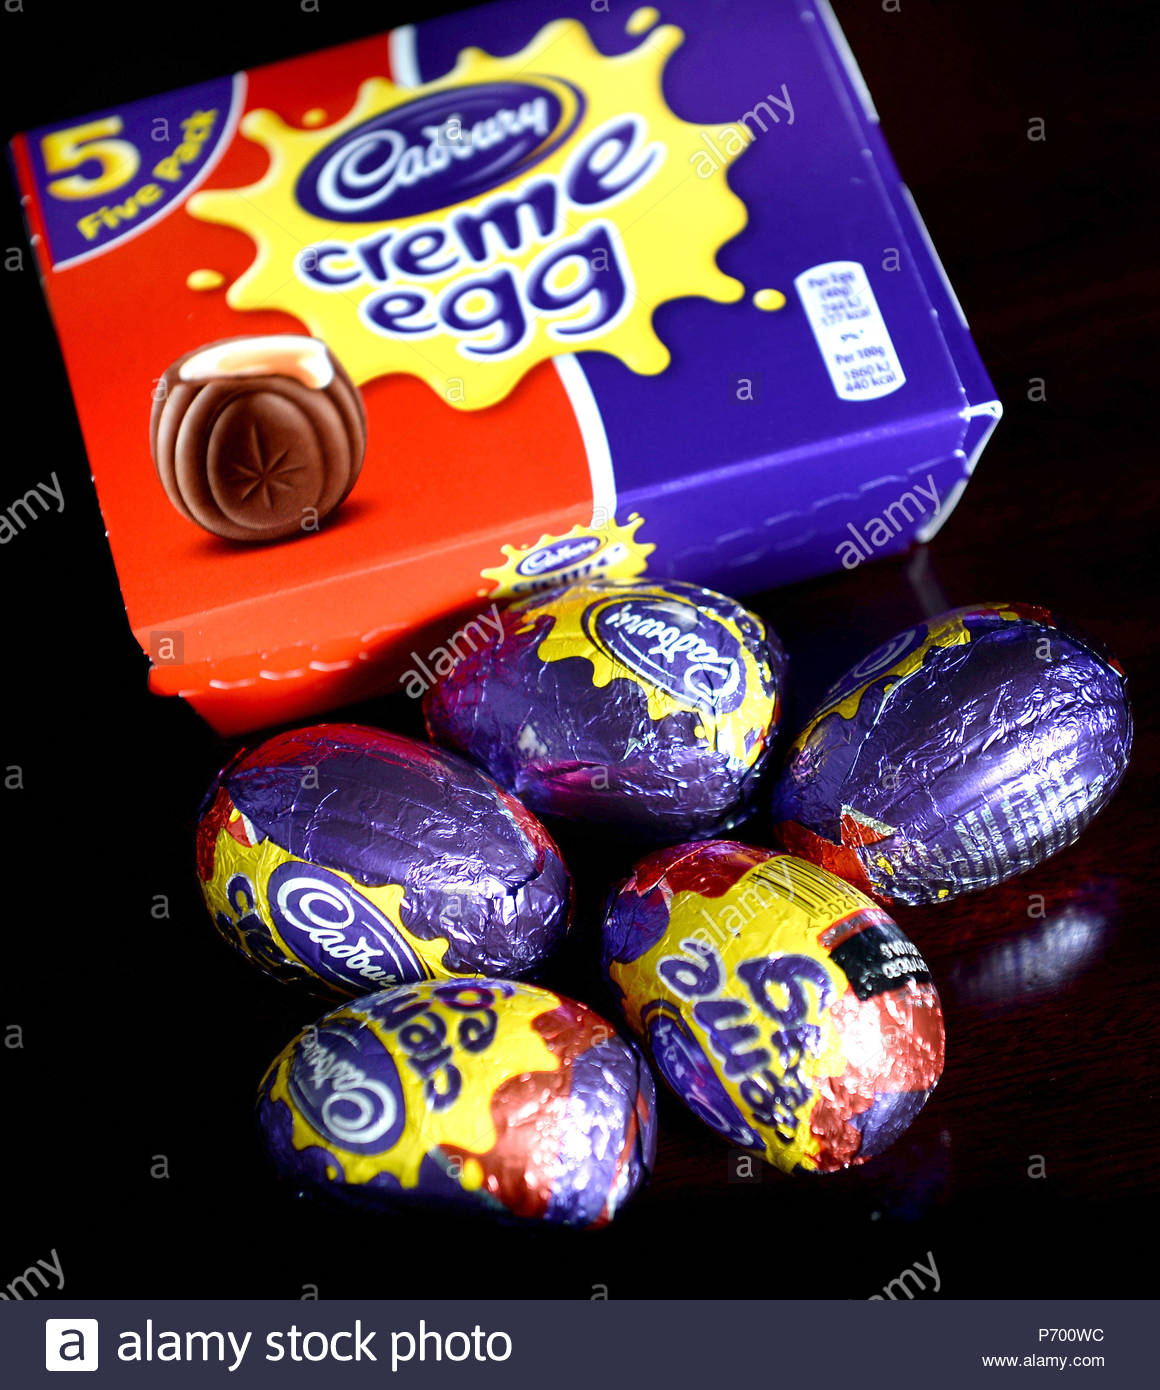 EMBARGOED TO 0001 WEDNESDAY JULY 04 File photo dated 12/01/2015 of a five pack of Cadbury's Creme Eggs, as adverts for Cadbury eggs and Chewits and Squashies sweets have been banned for breaking new rules prohibiting the advertising of junk food to children. - Stock Image